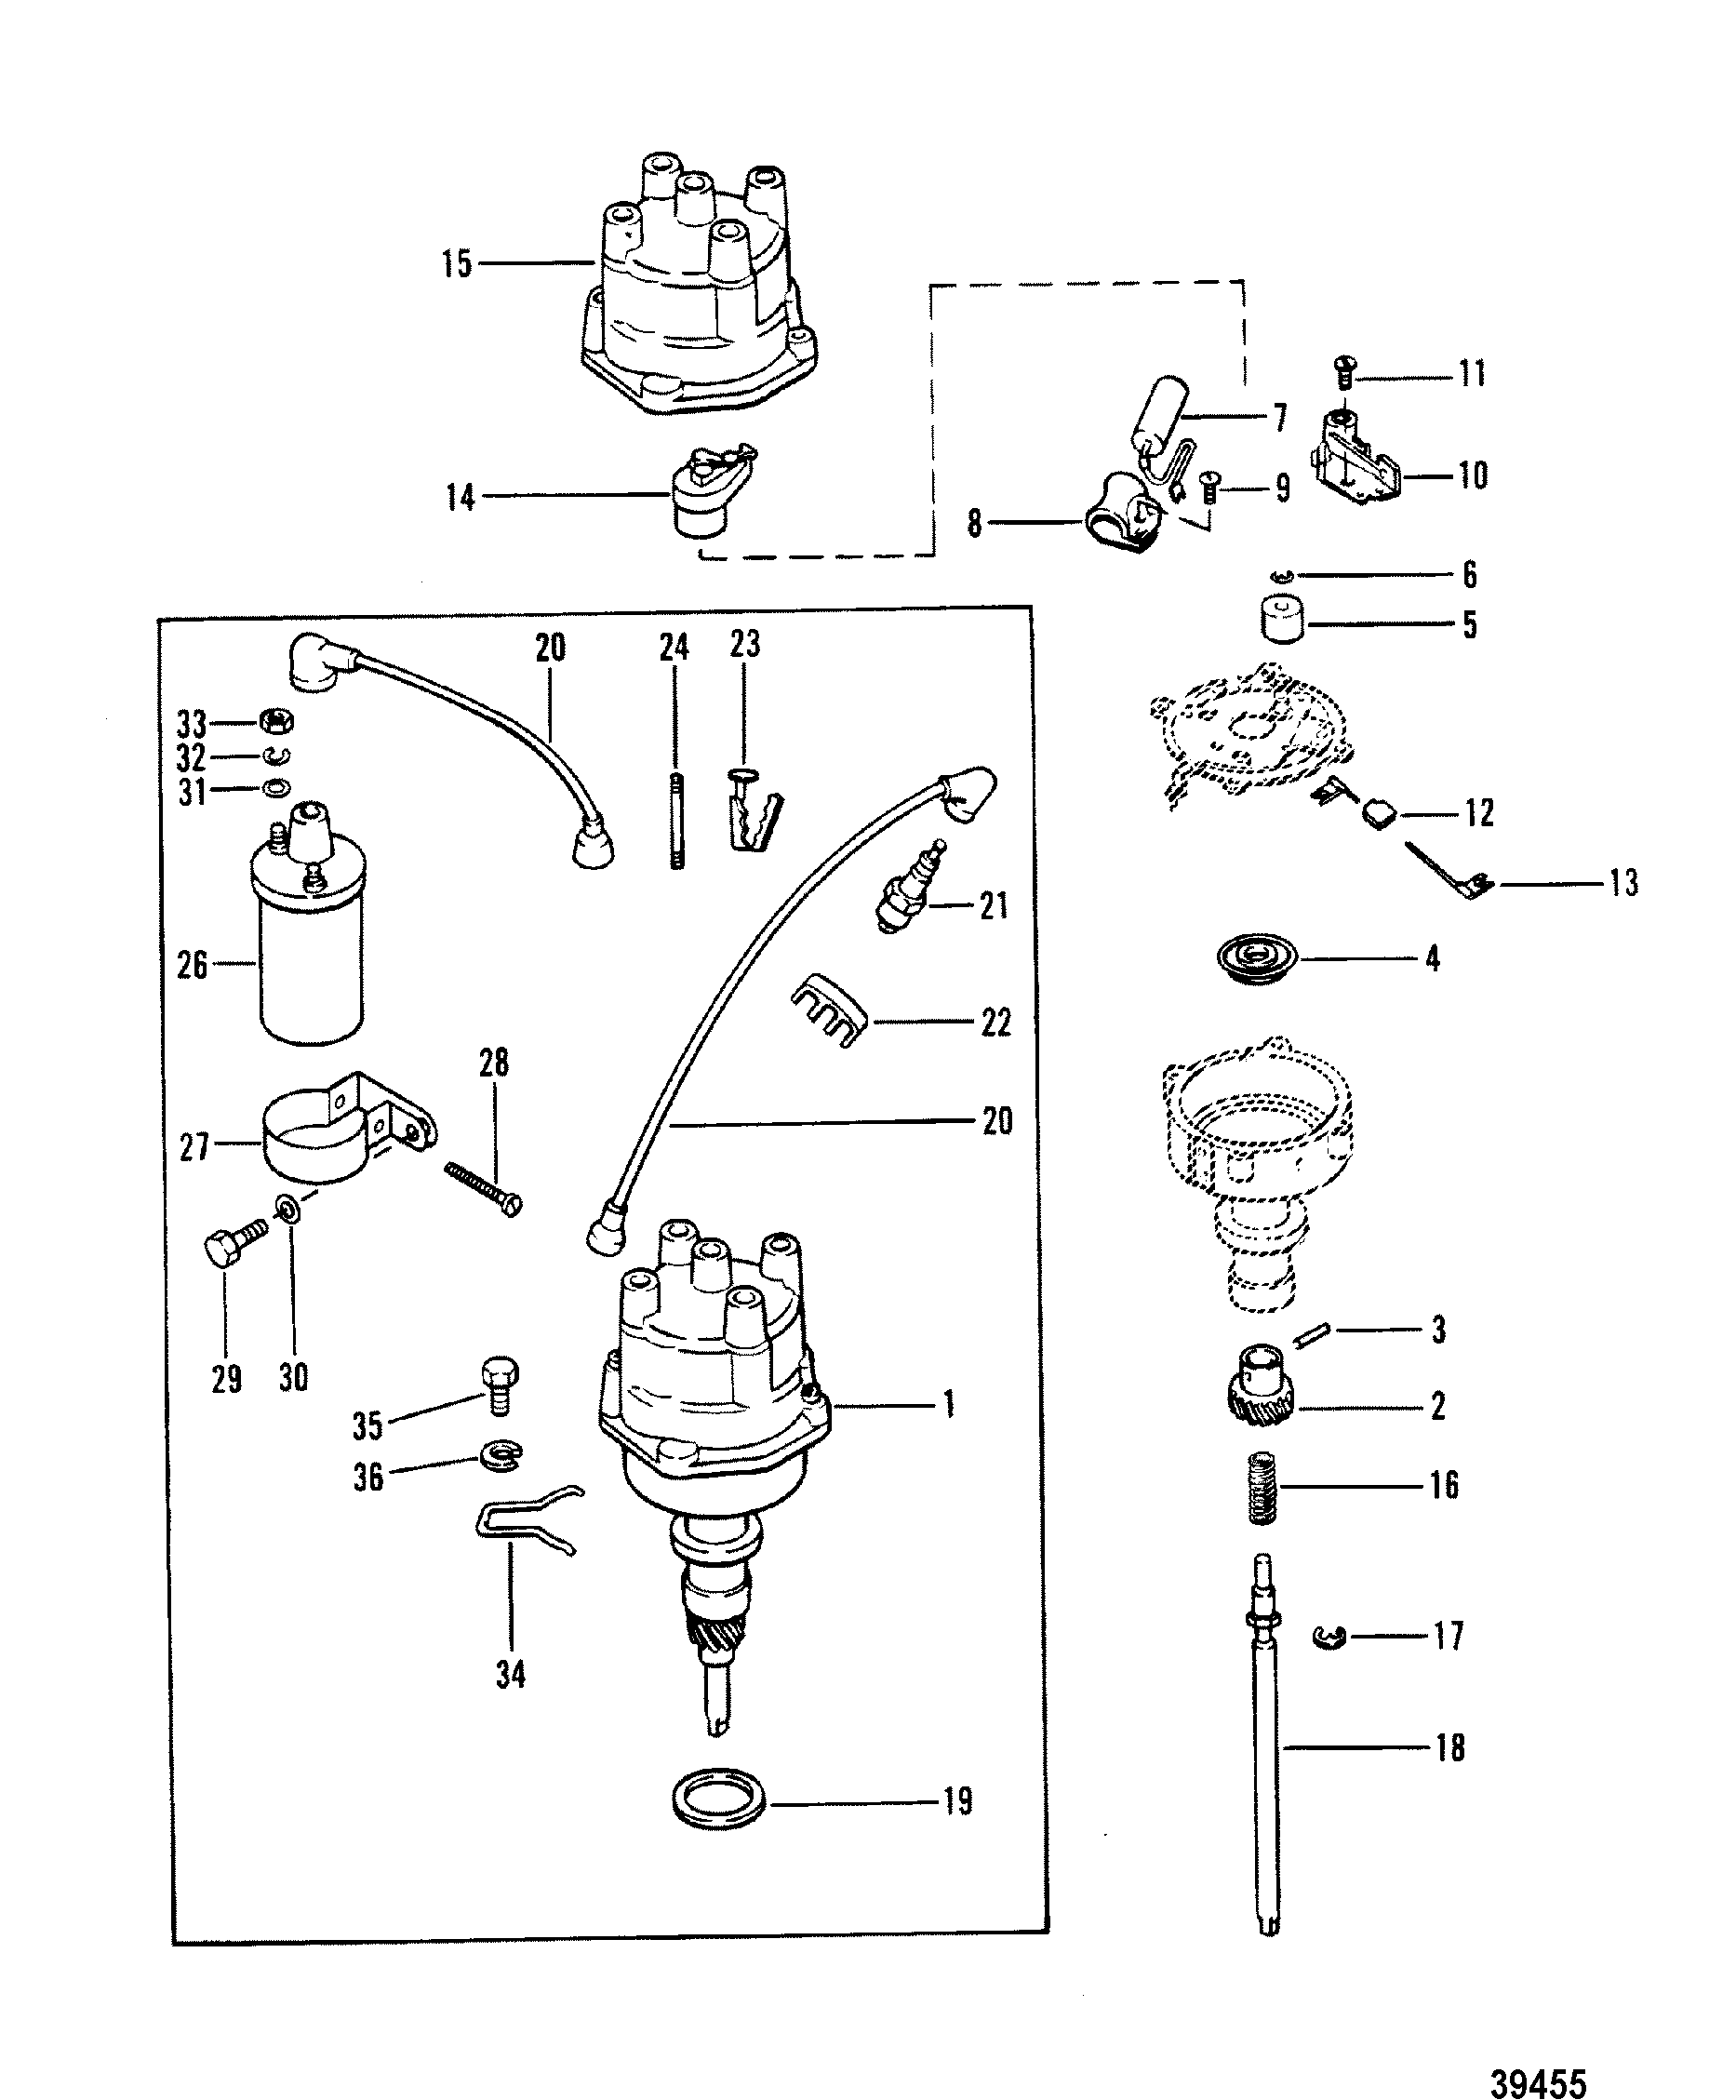 mercruiser thunderbolt ignition wiring diagram parts of a flower simple 7 4 distributor get free image